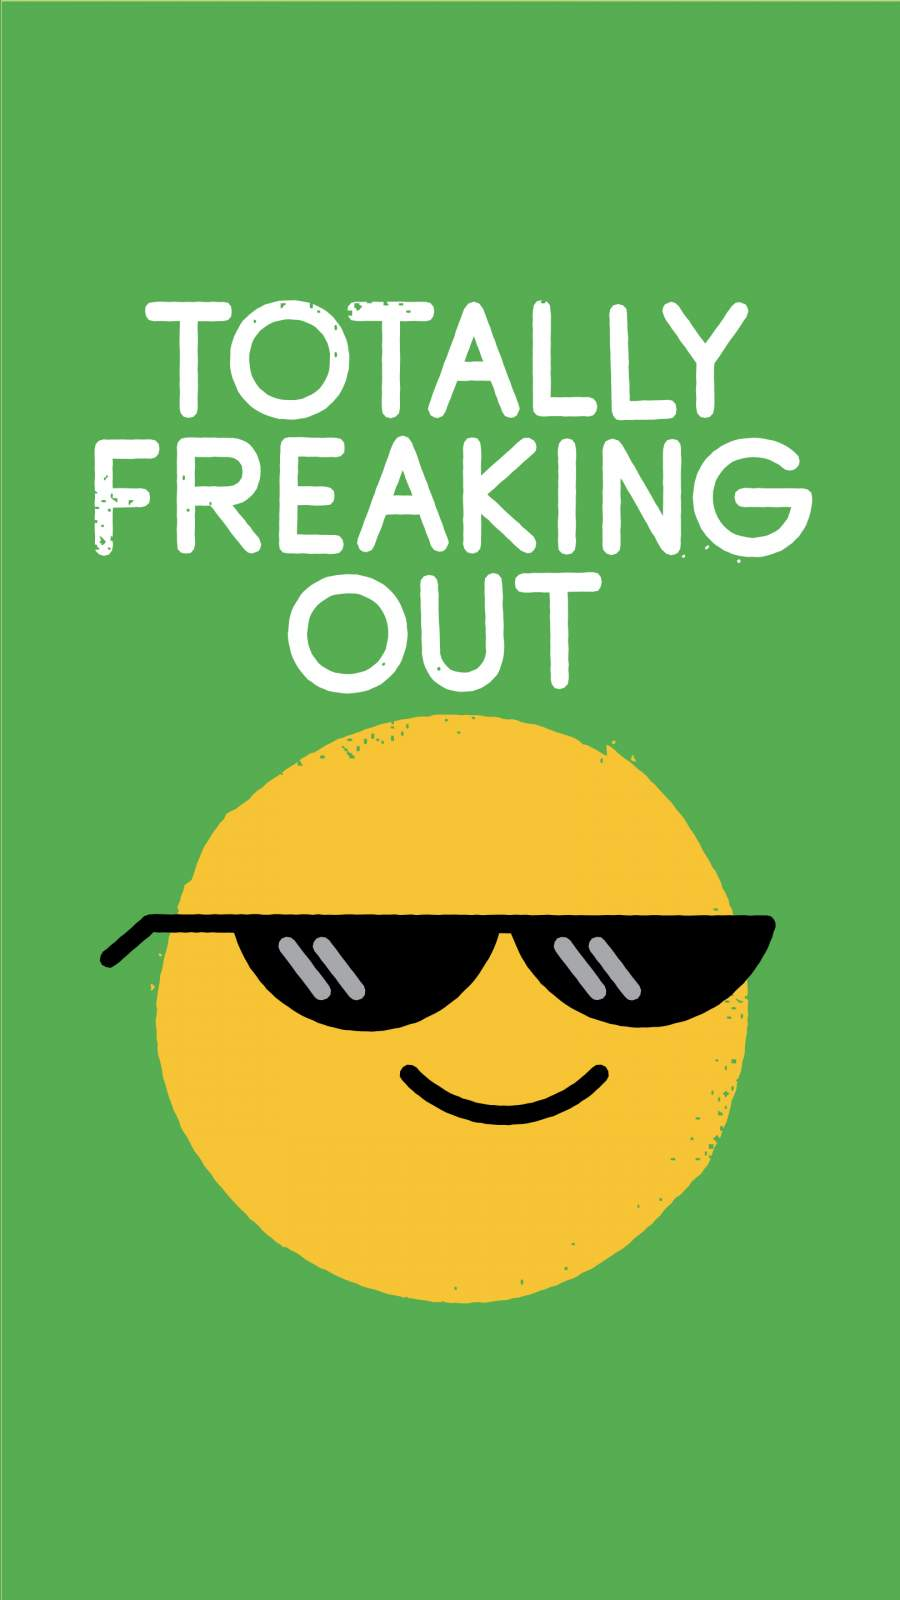 Totally Freaking Out iPhone Wallpaper